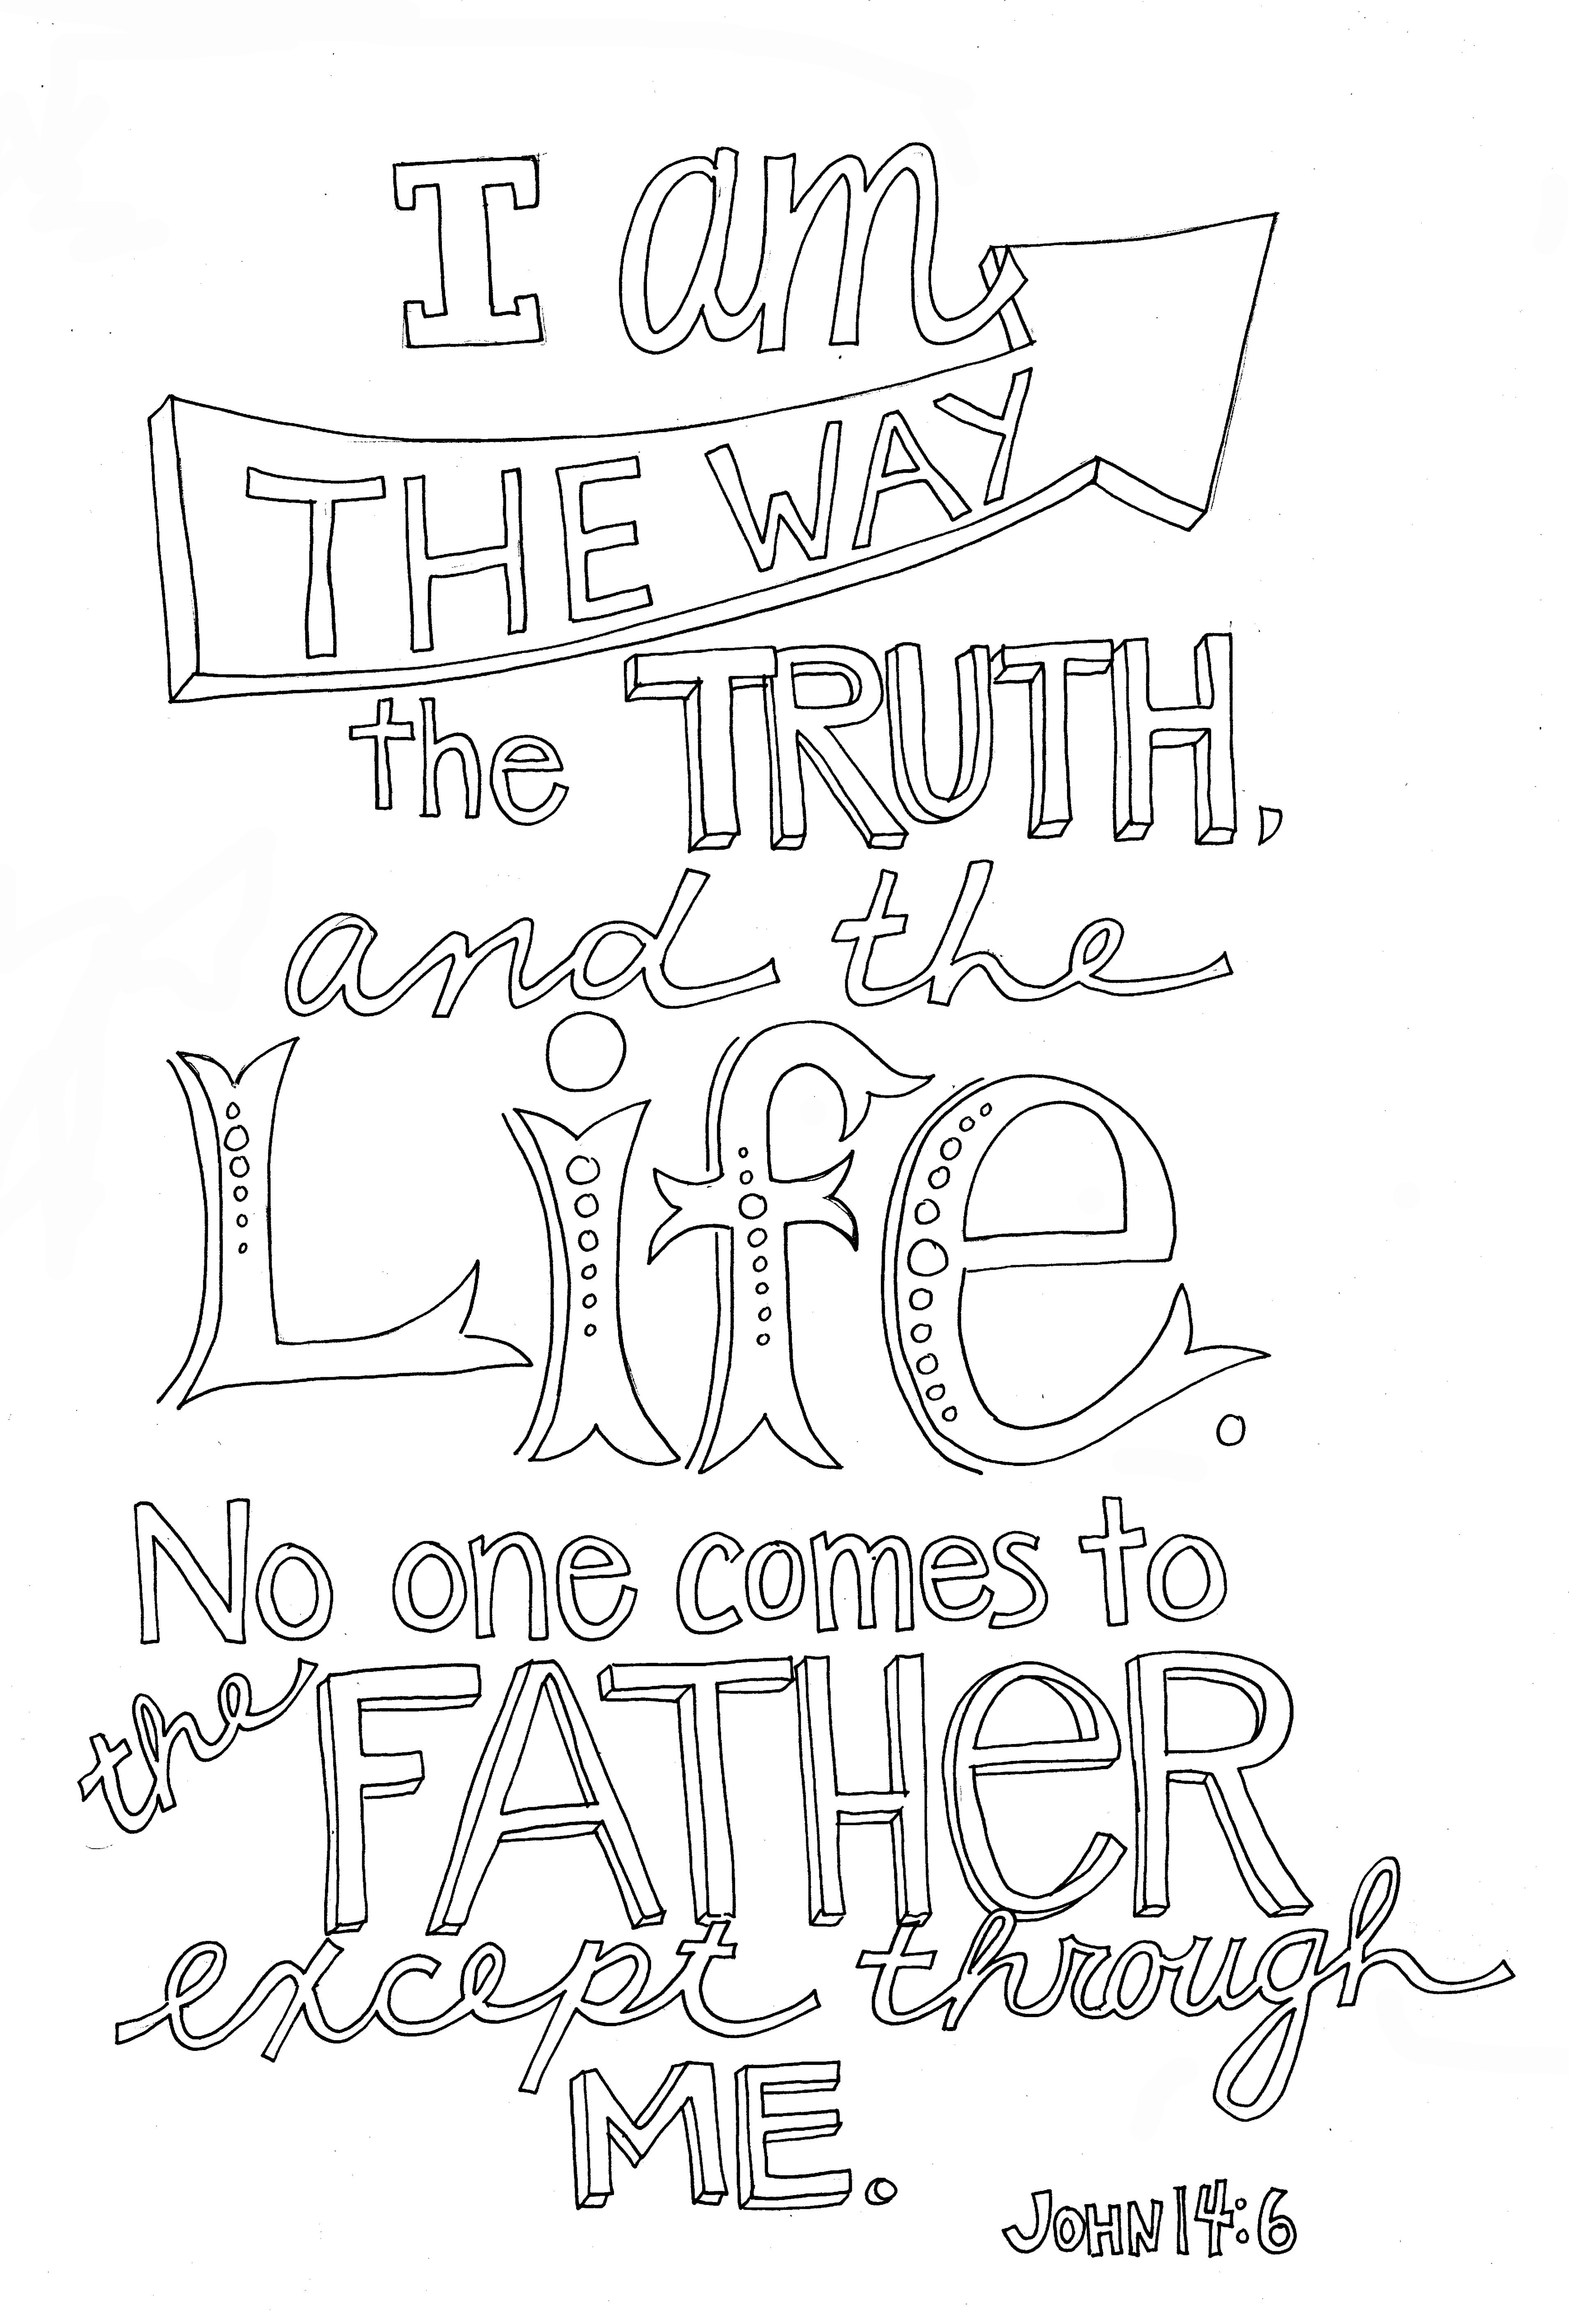 John 14 6 Coloring Page From Victory Road